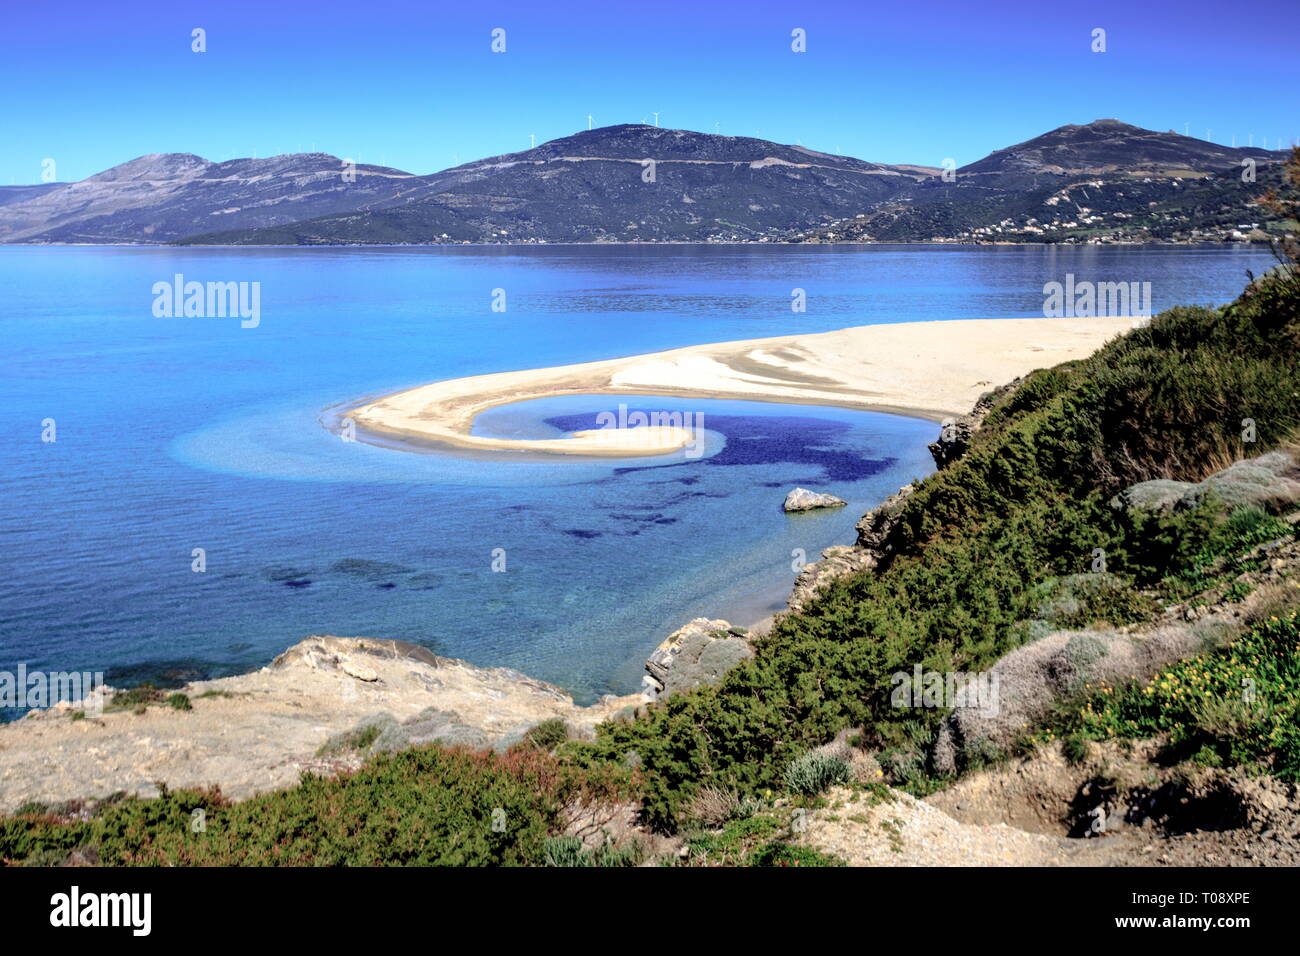 "Chryssi Ammos (""Golden Sand"") beach, close to Marmari town, Evia island, Central Greece. Stock Photo"